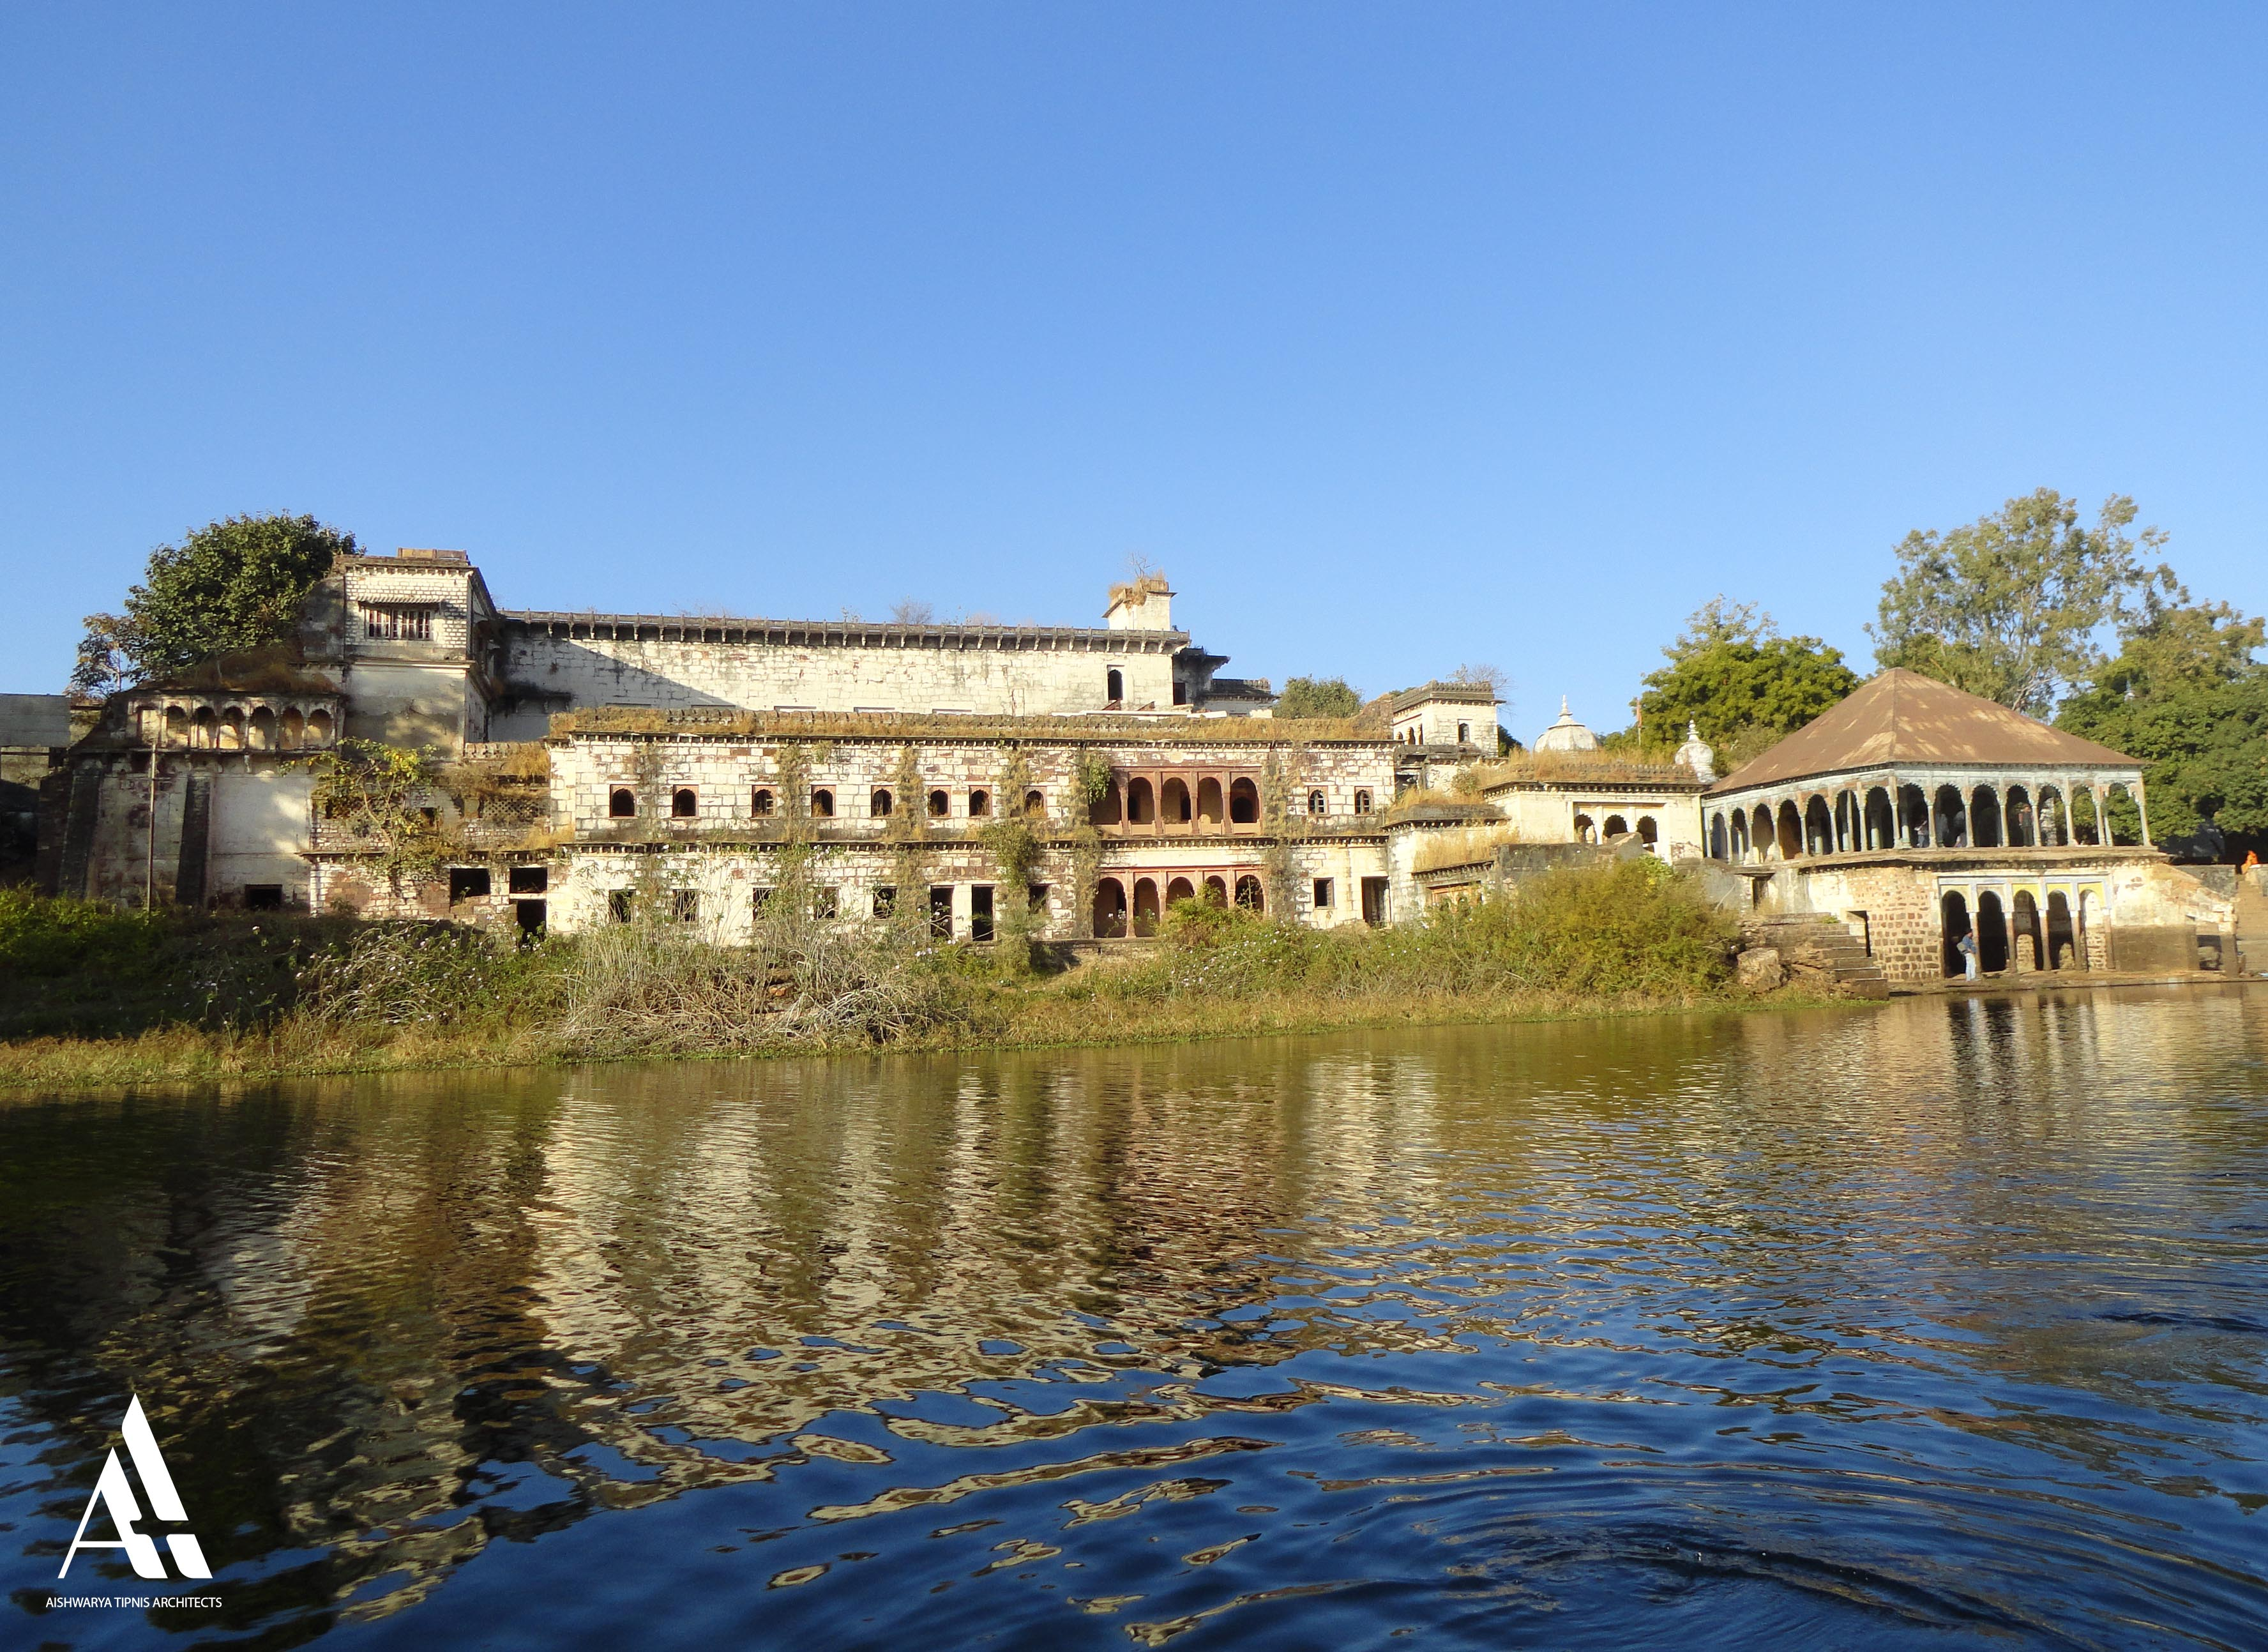 Restoration & Adaptive Reuse of Govindgarh Fort